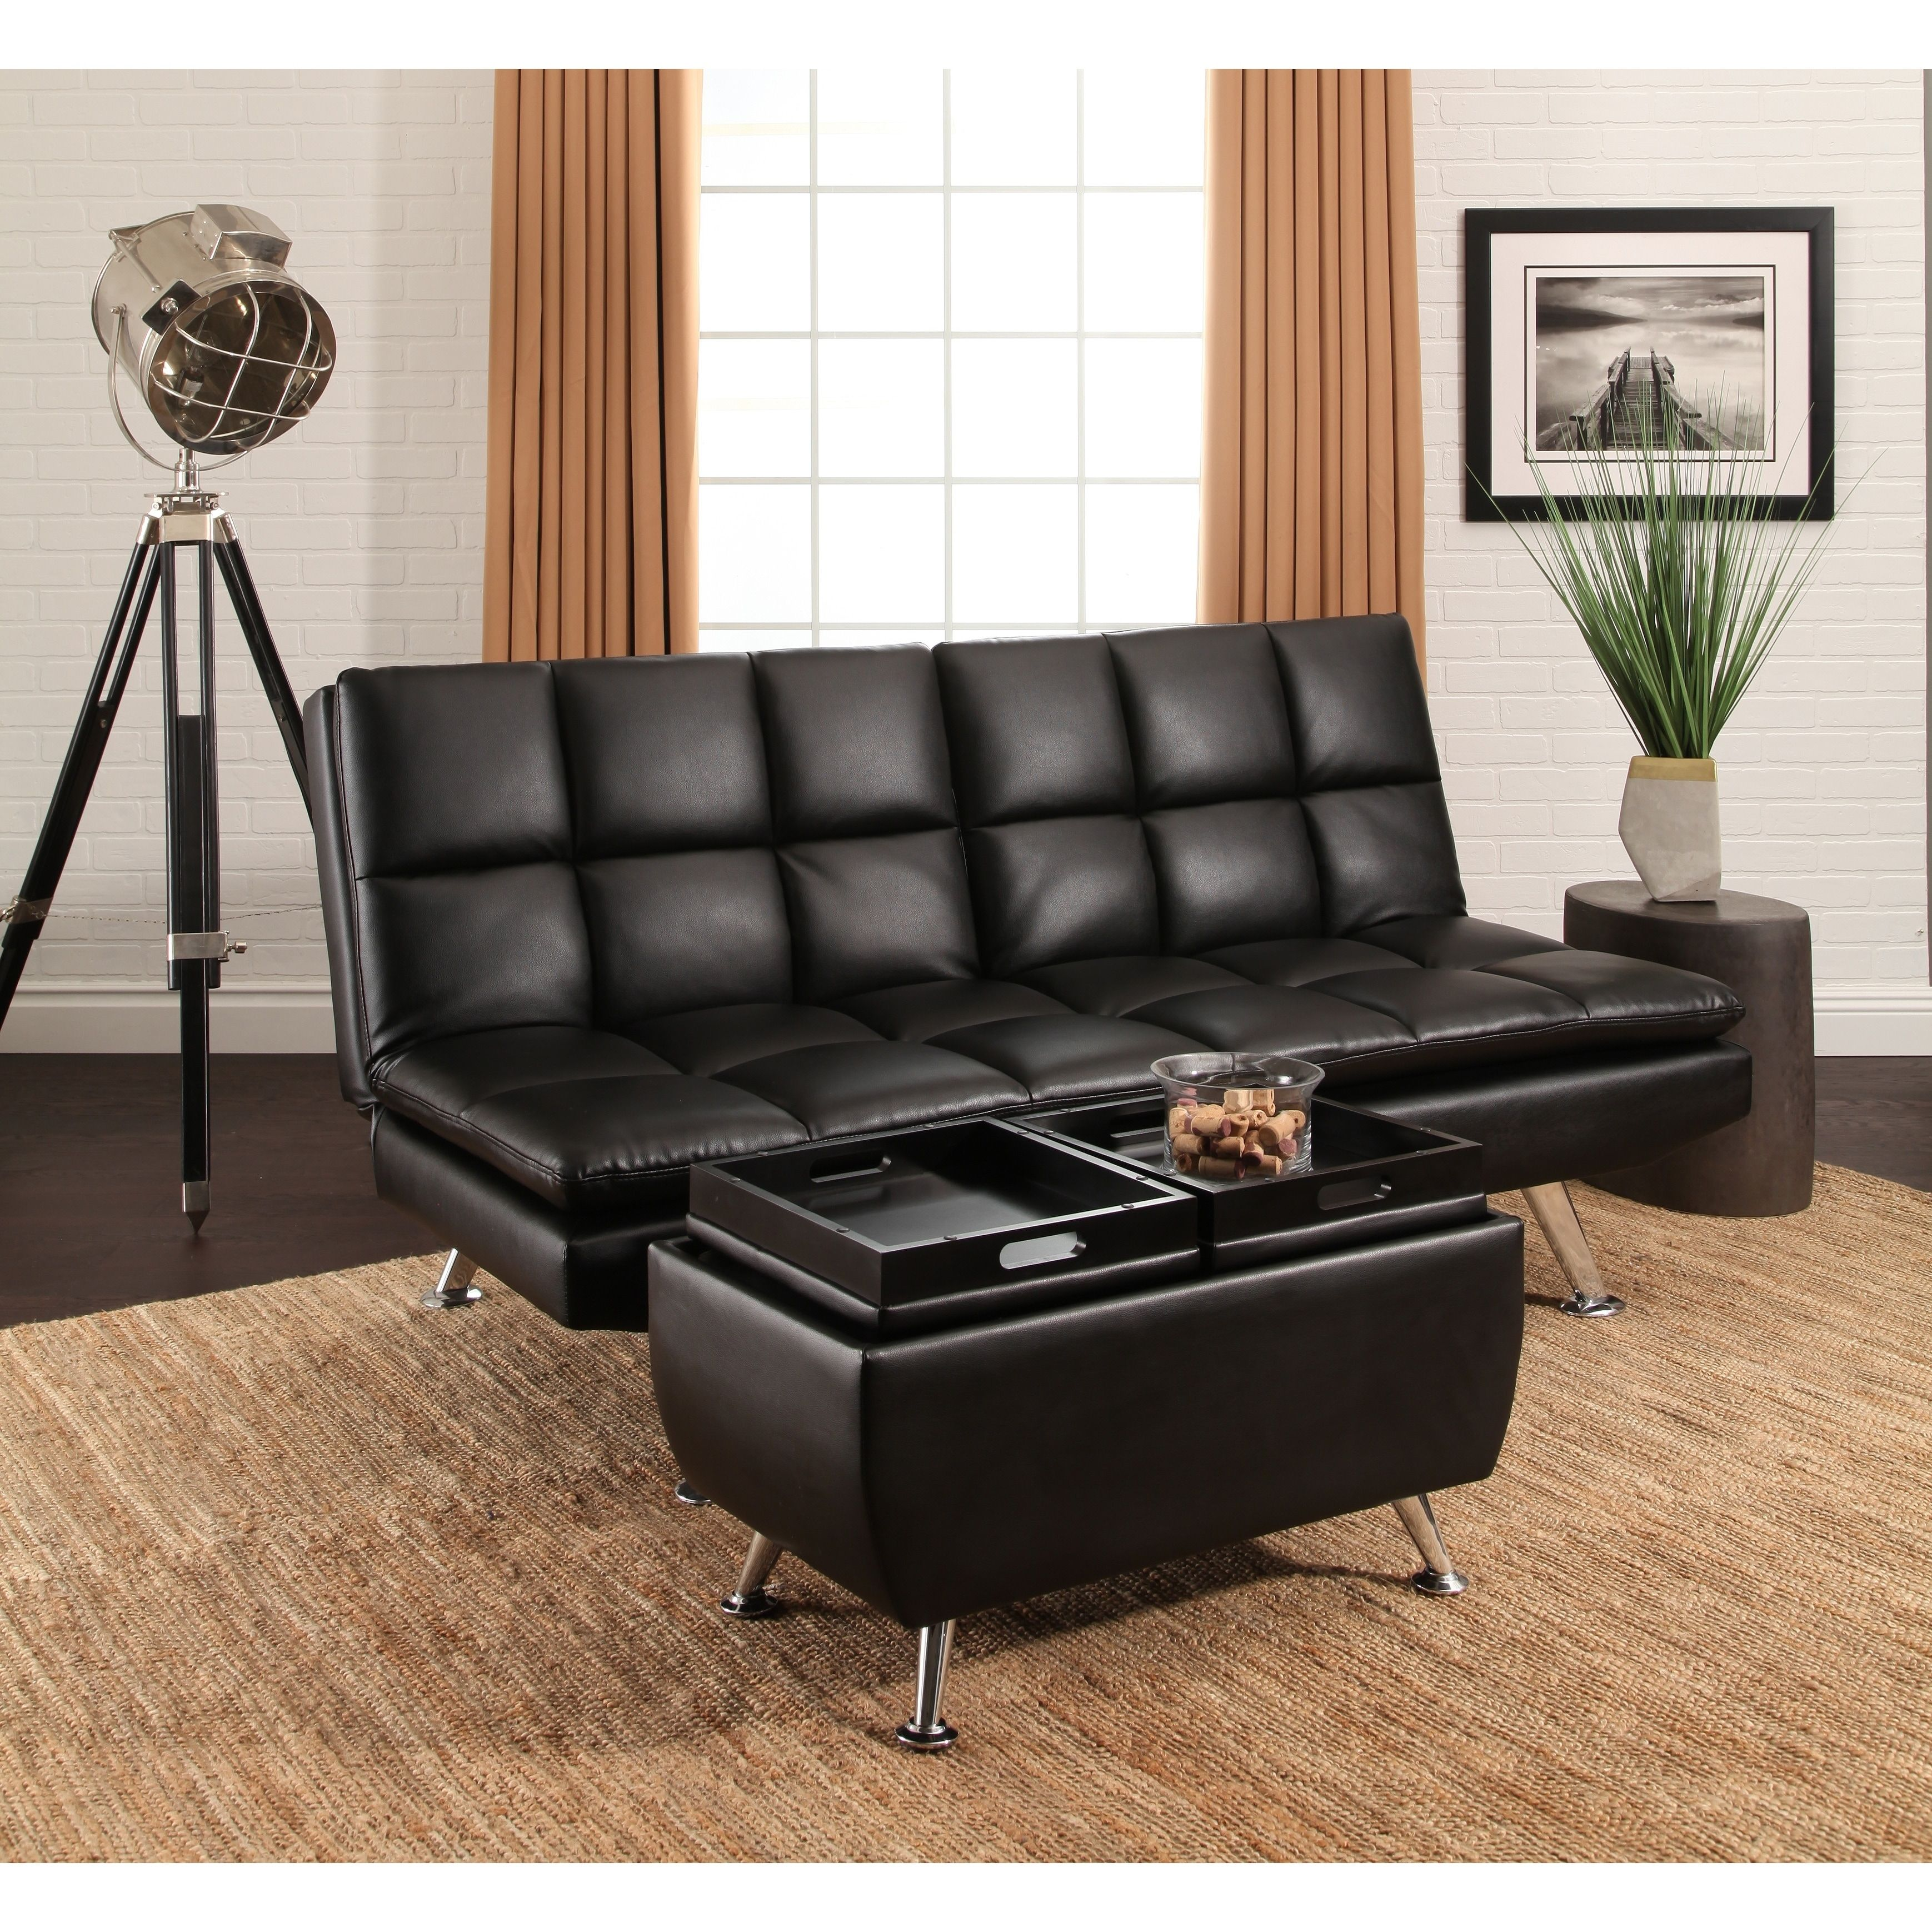 Incredible Abbyson Brandon Black Bonded Leather Sofa Bed And Ottoman Machost Co Dining Chair Design Ideas Machostcouk